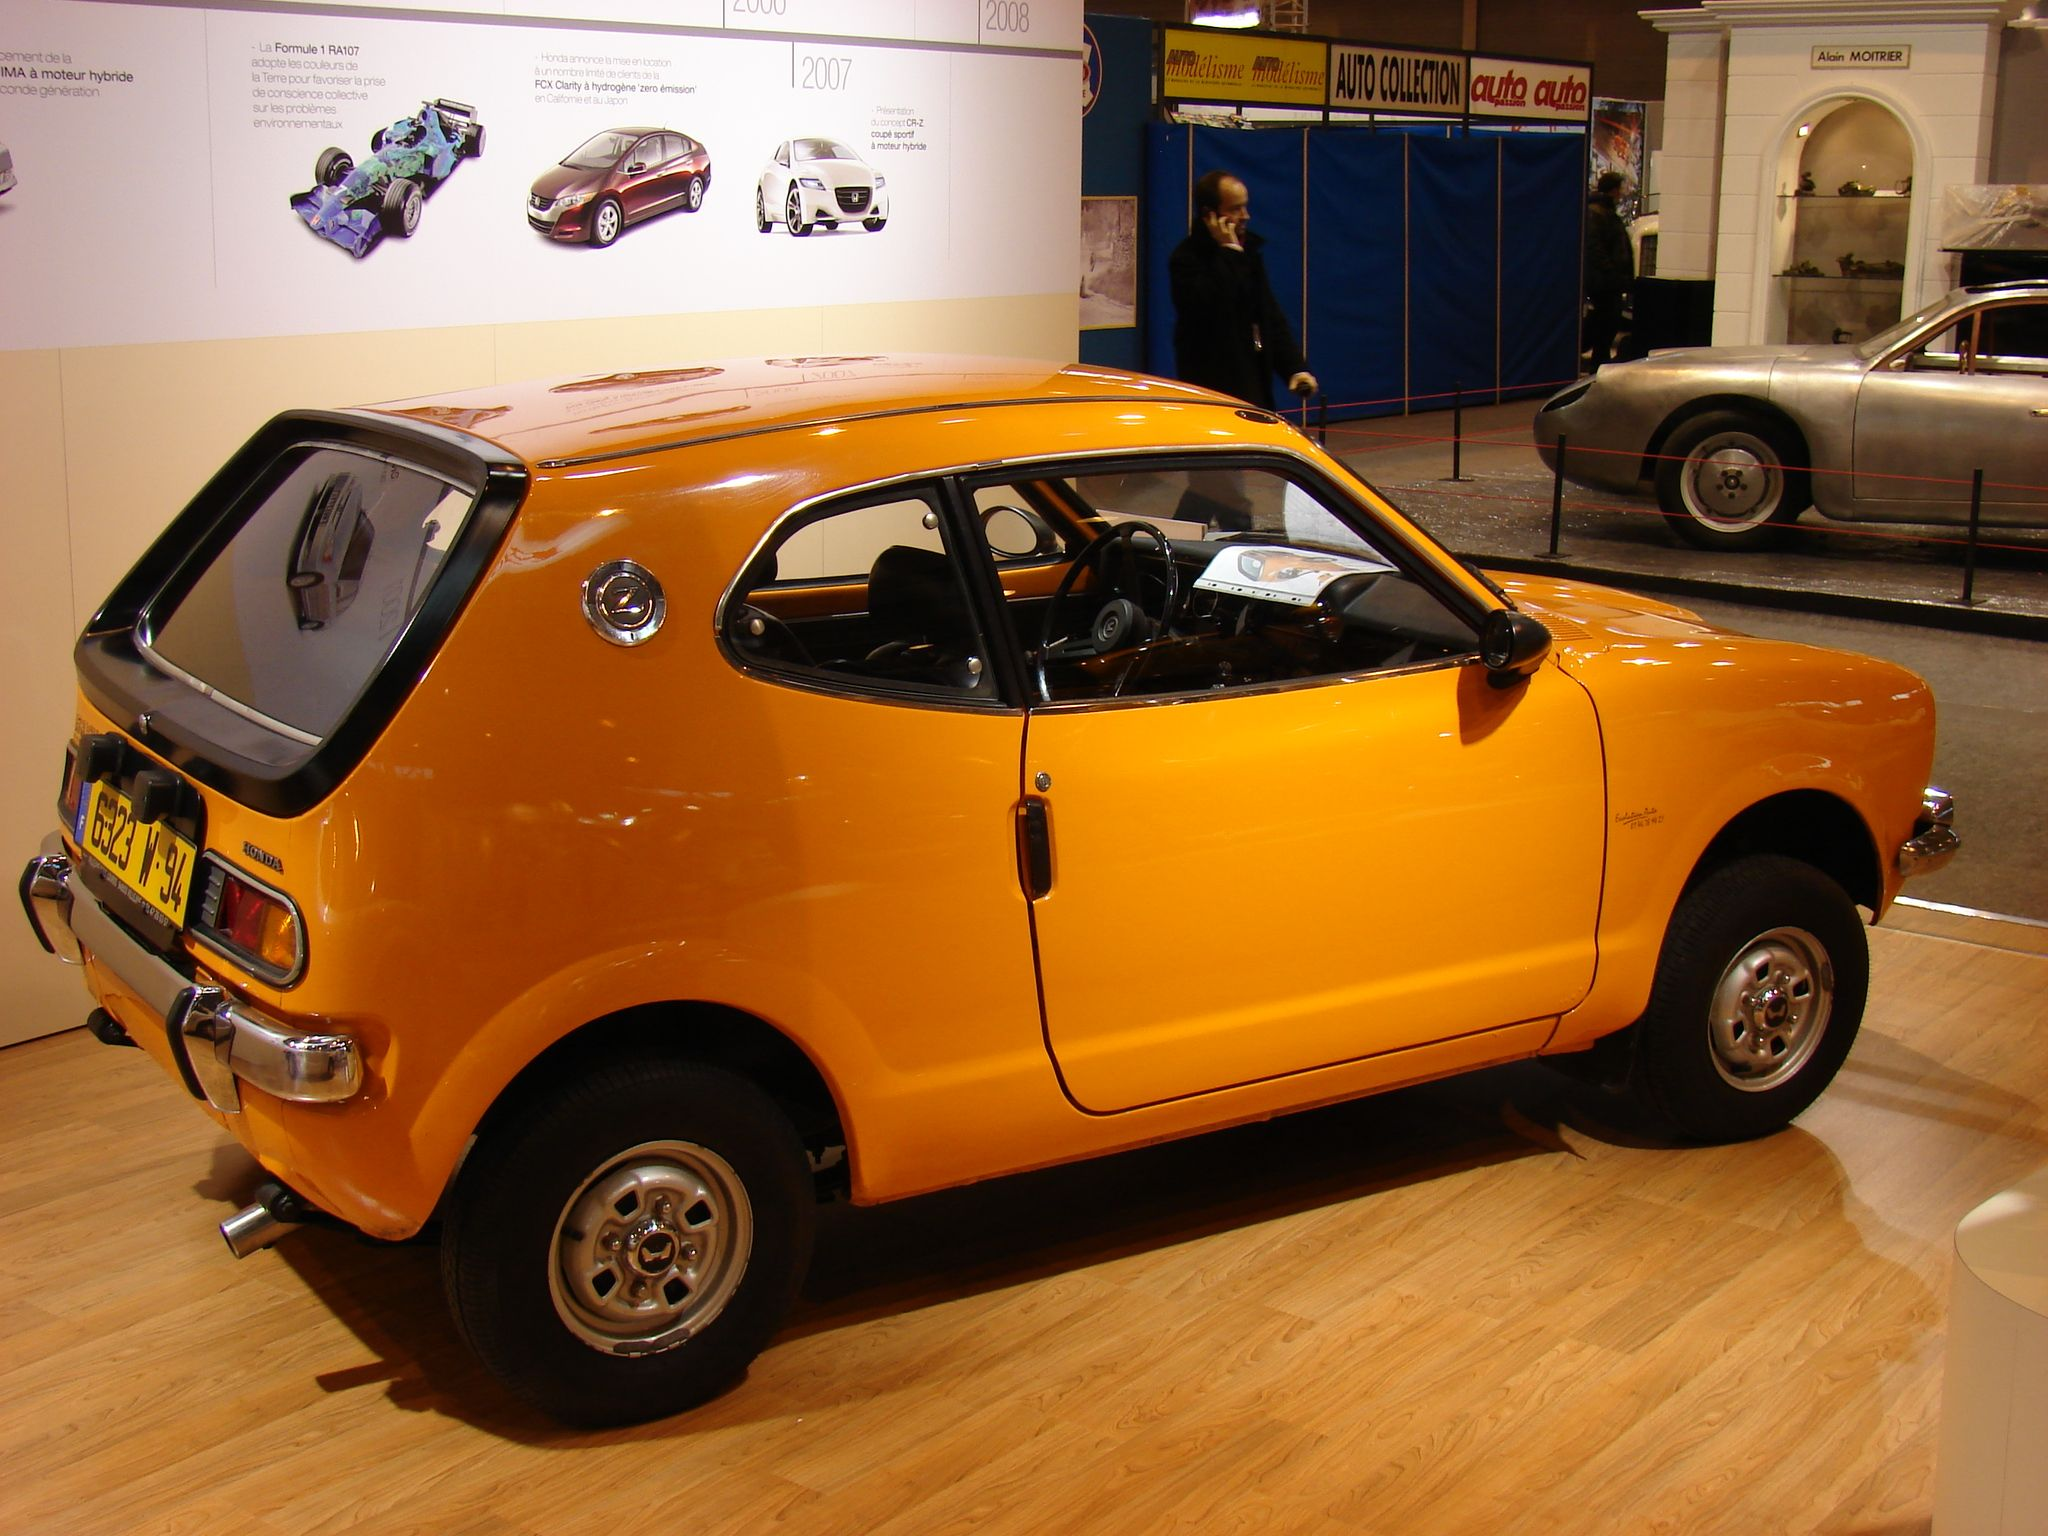 honda z600 2 door micro car from the 70s things i want. Black Bedroom Furniture Sets. Home Design Ideas